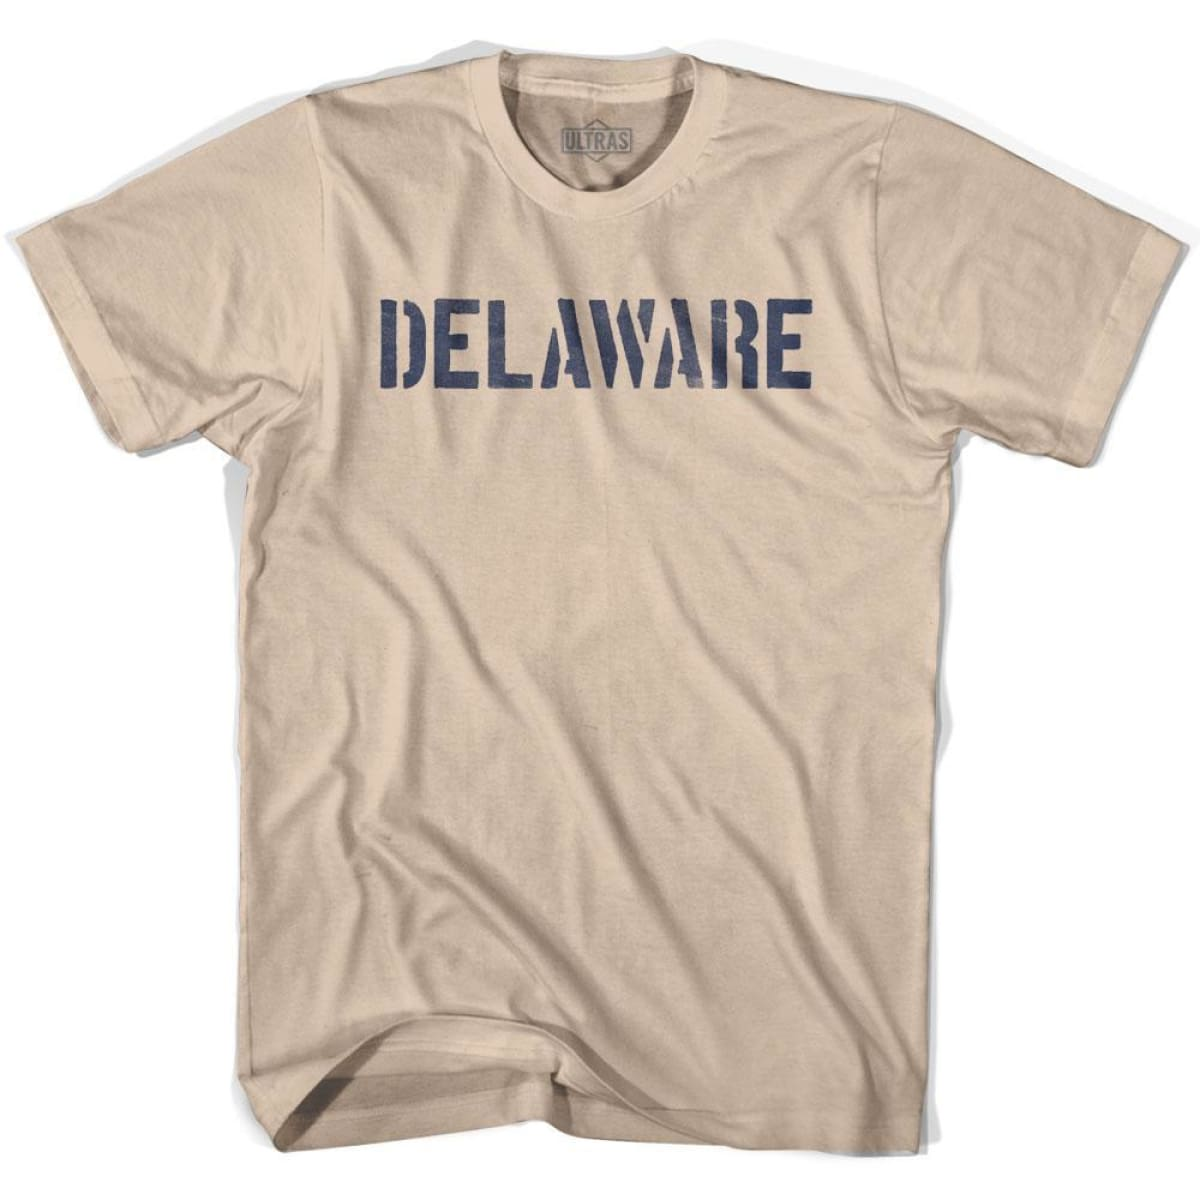 Delaware State Stencil Adult Cotton T-shirt - Creme / Adult Small - Stencil State